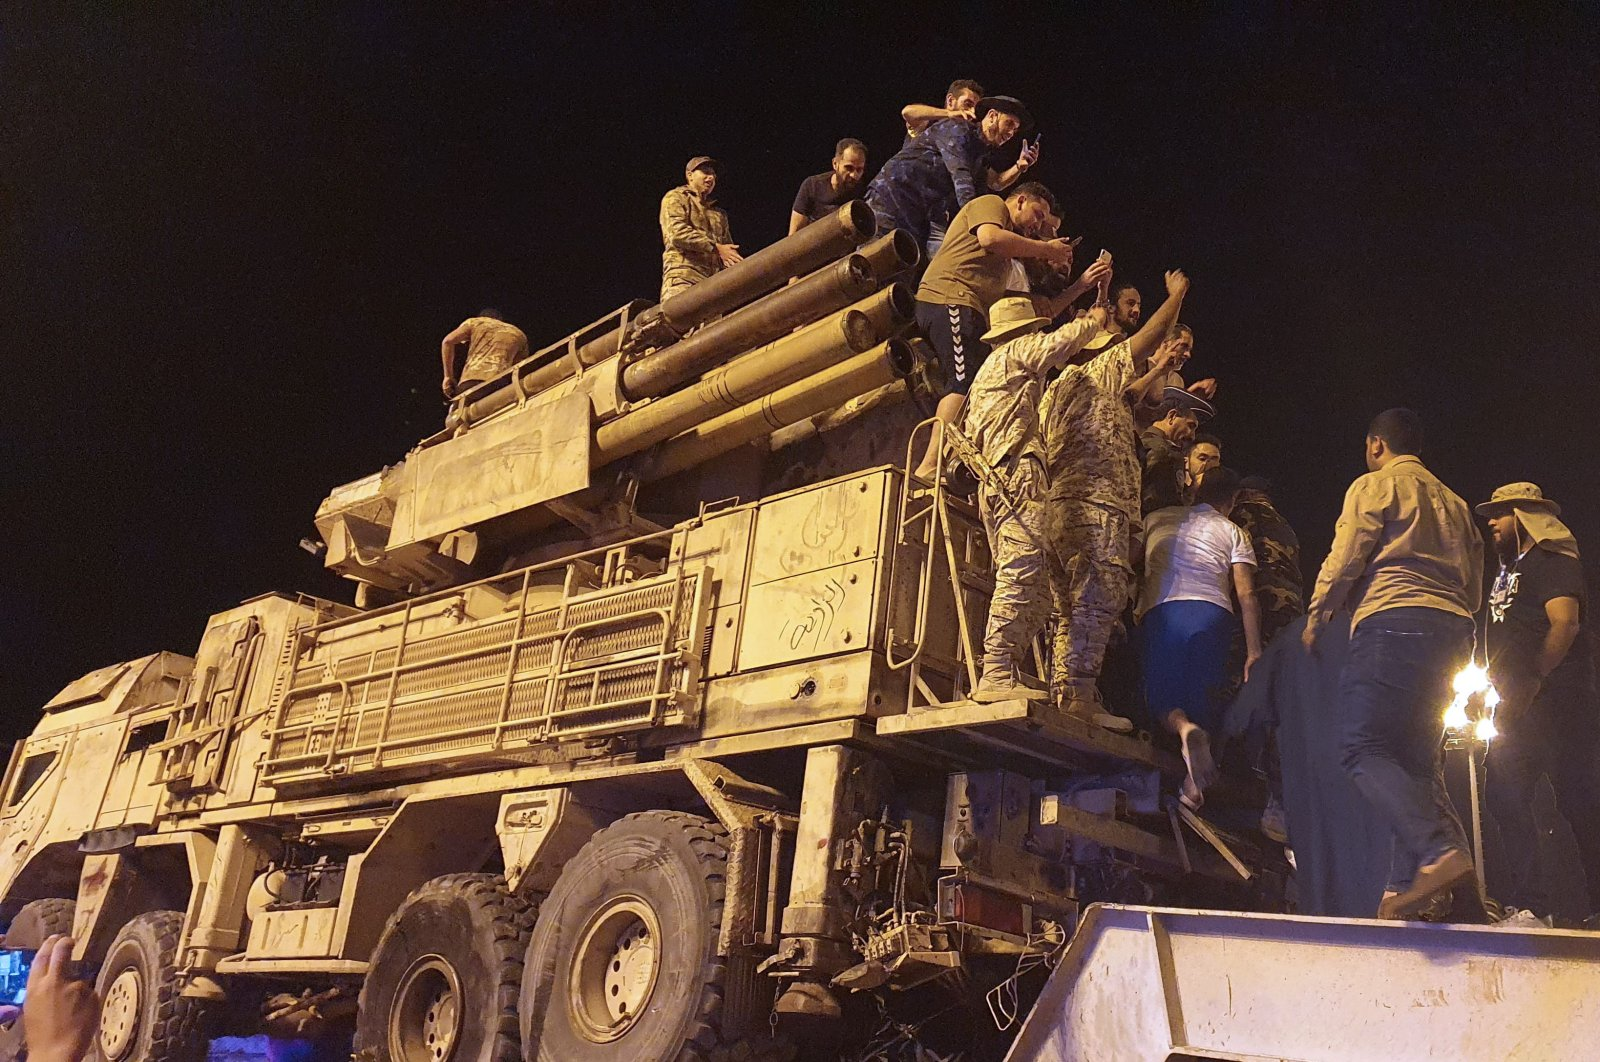 Forces loyal to Libya's UN-recognised Government of National Accord (GNA) parade on a Pantsir air defense system truck in the capital Tripoli, May 20, 2020,. (AFP)